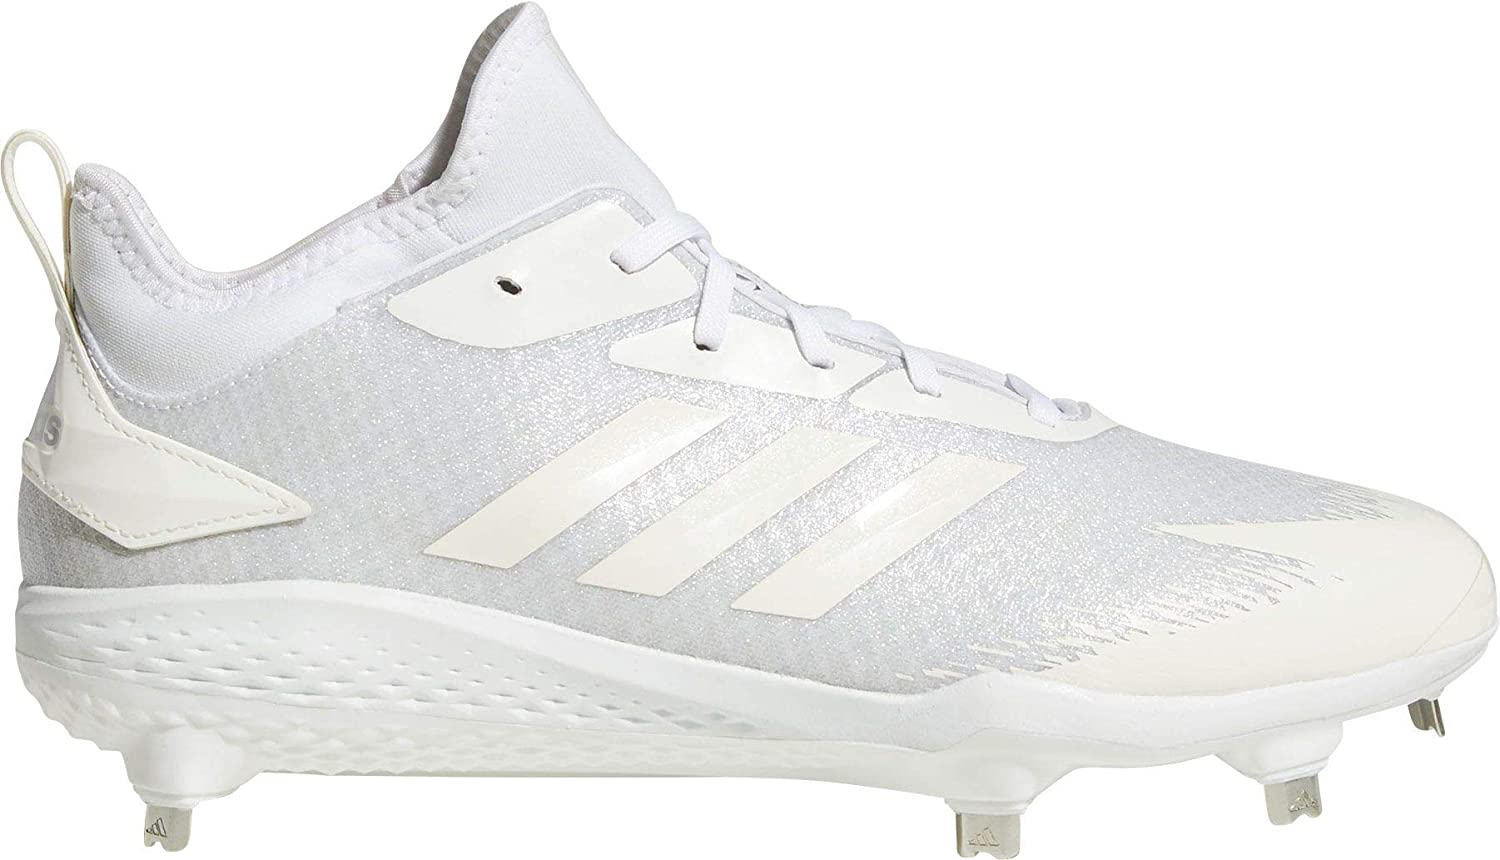 4565f06a53279 Amazon.com  adidas Men s Adizero Afterburner V Dipped Metal Baseball Cleats   Sports   Outdoors